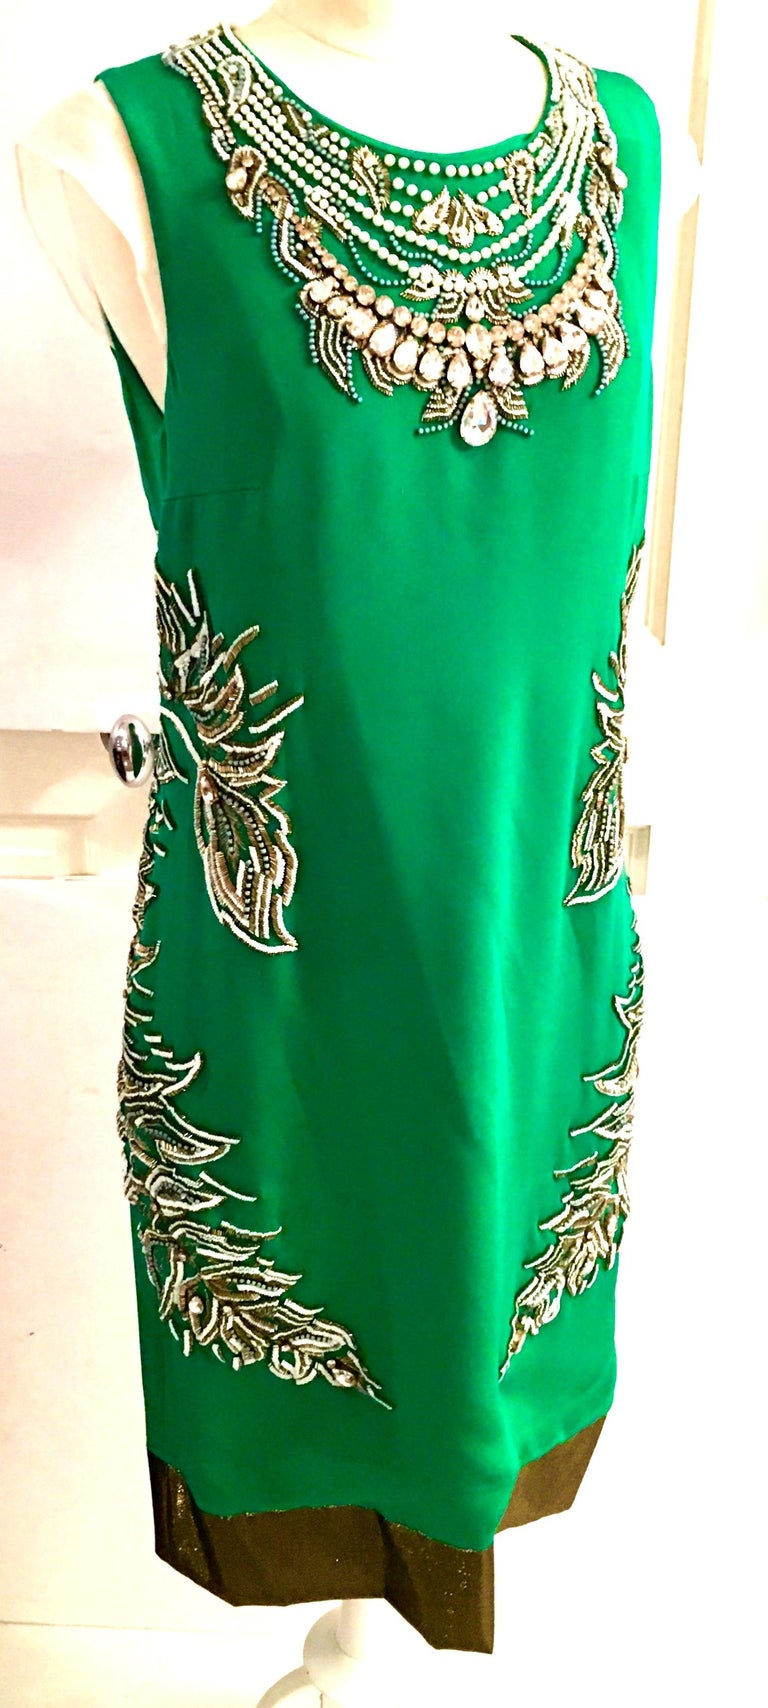 2013 New Runway Hand Beaded Silk Dress By, Thakoon, Italy- Size 6 In New Condition For Sale In West Palm Beach, FL